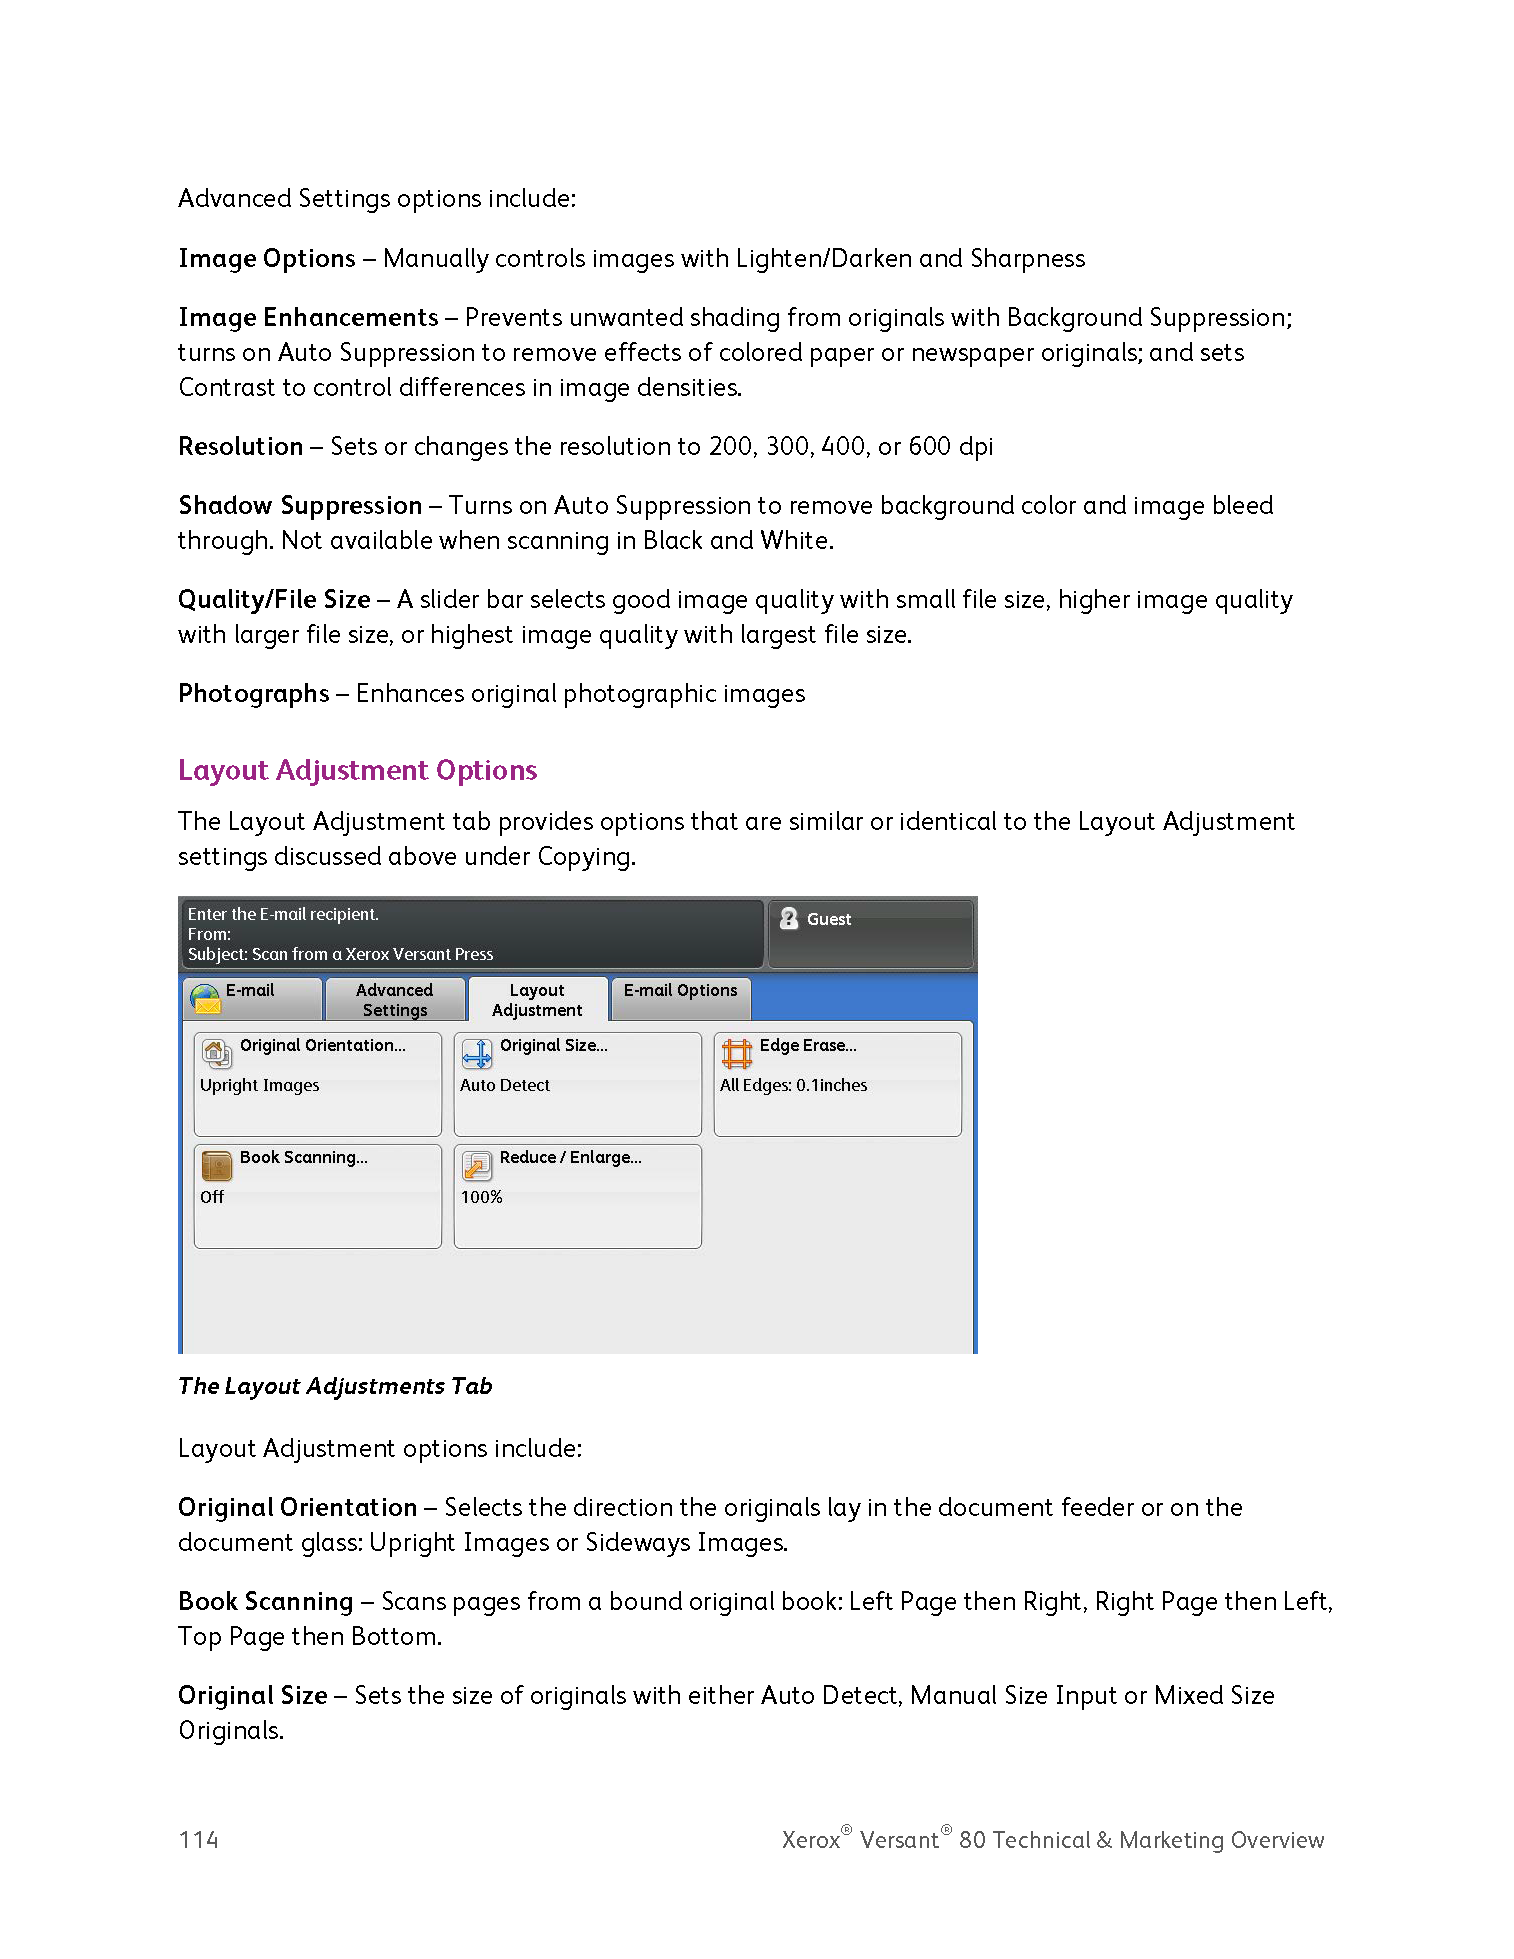 Versant 80 TMO Final_12.18.14.Optimized_Page_122.png